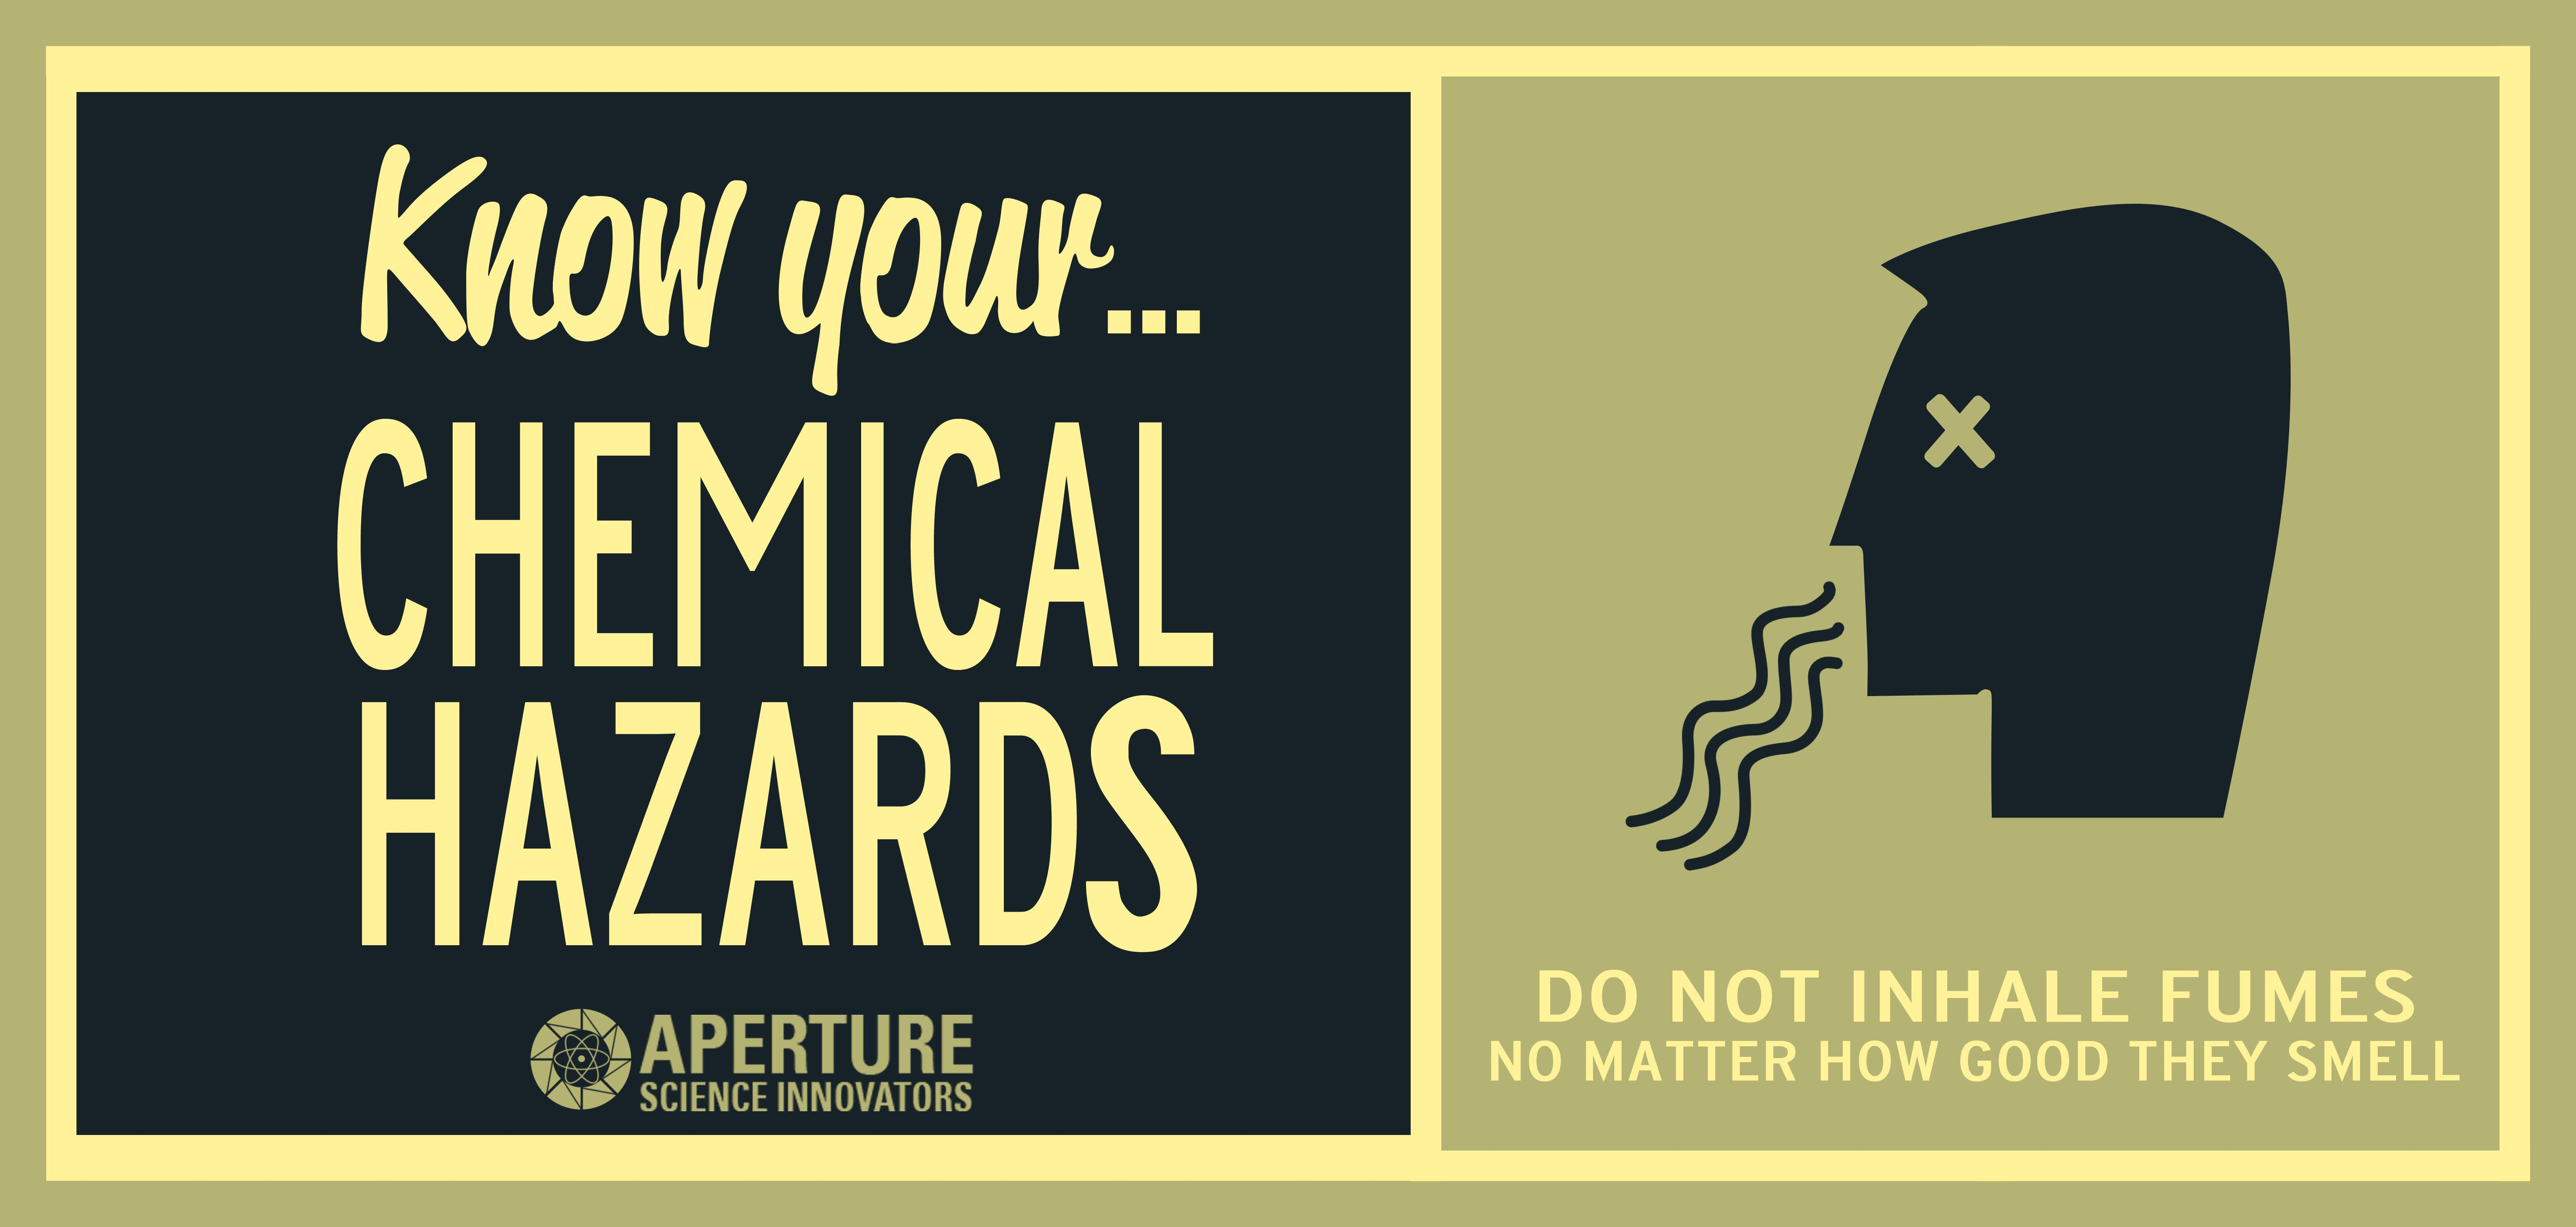 Know your chemical hazards.jpg